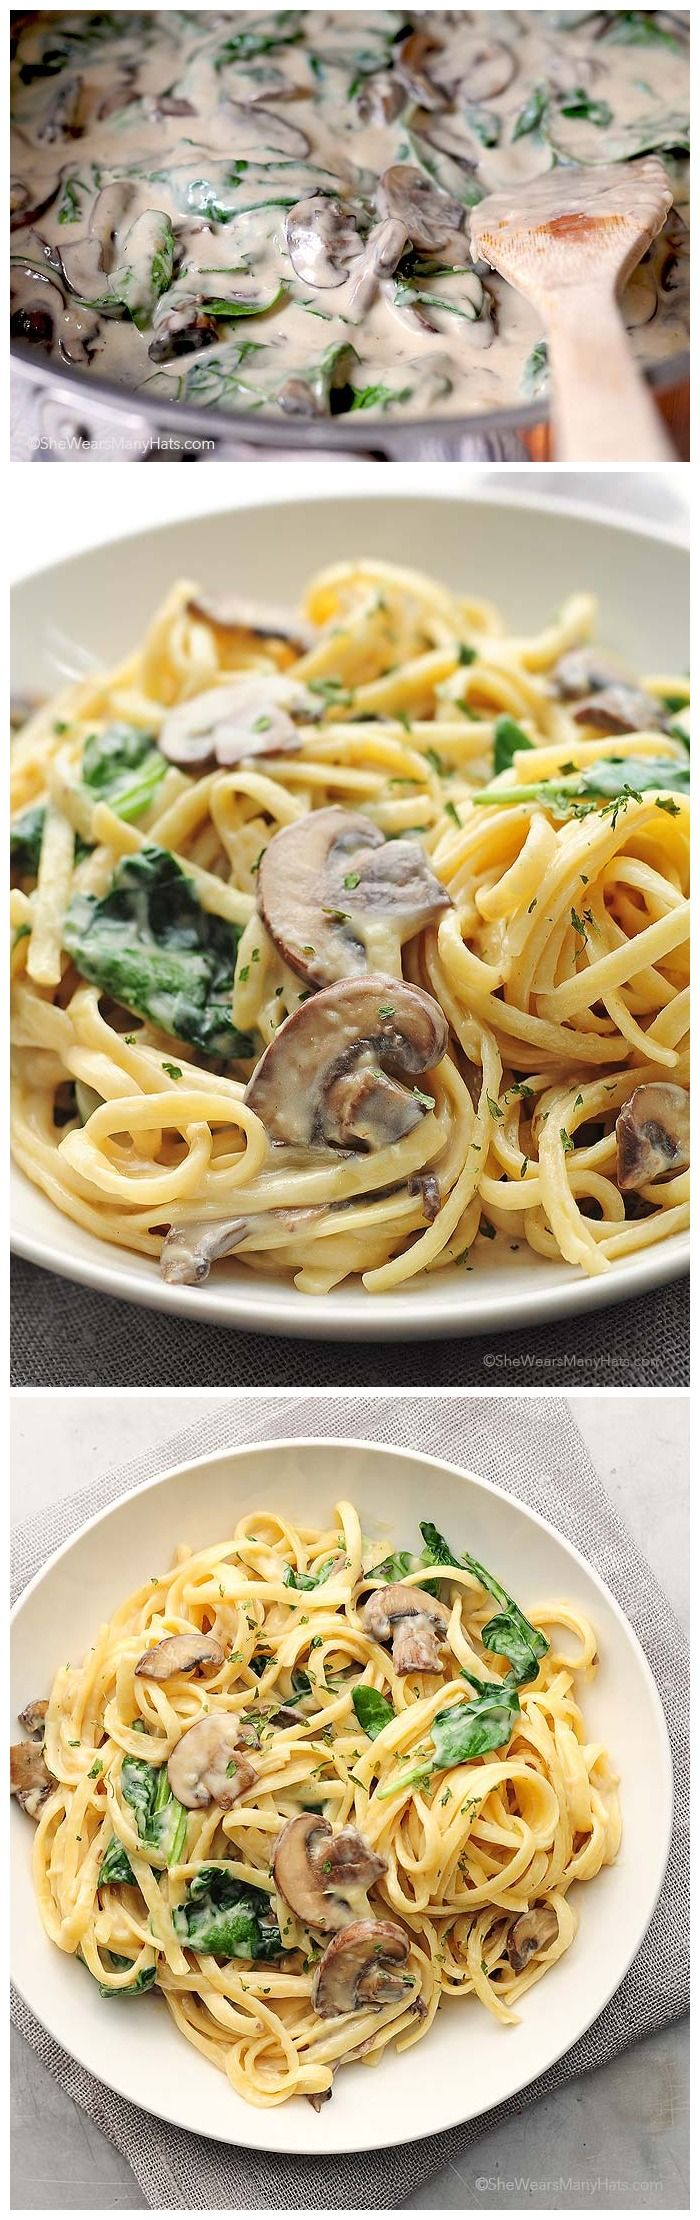 MUSHROOM FLORENTINE PASTA RECIPE INGREDIENTS 8 ounces linguine pasta, uncooked (same amount of other pasta may be substituted) 3 tablespoons all-purpose flour 1 cup chicken broth 1 cup whole…